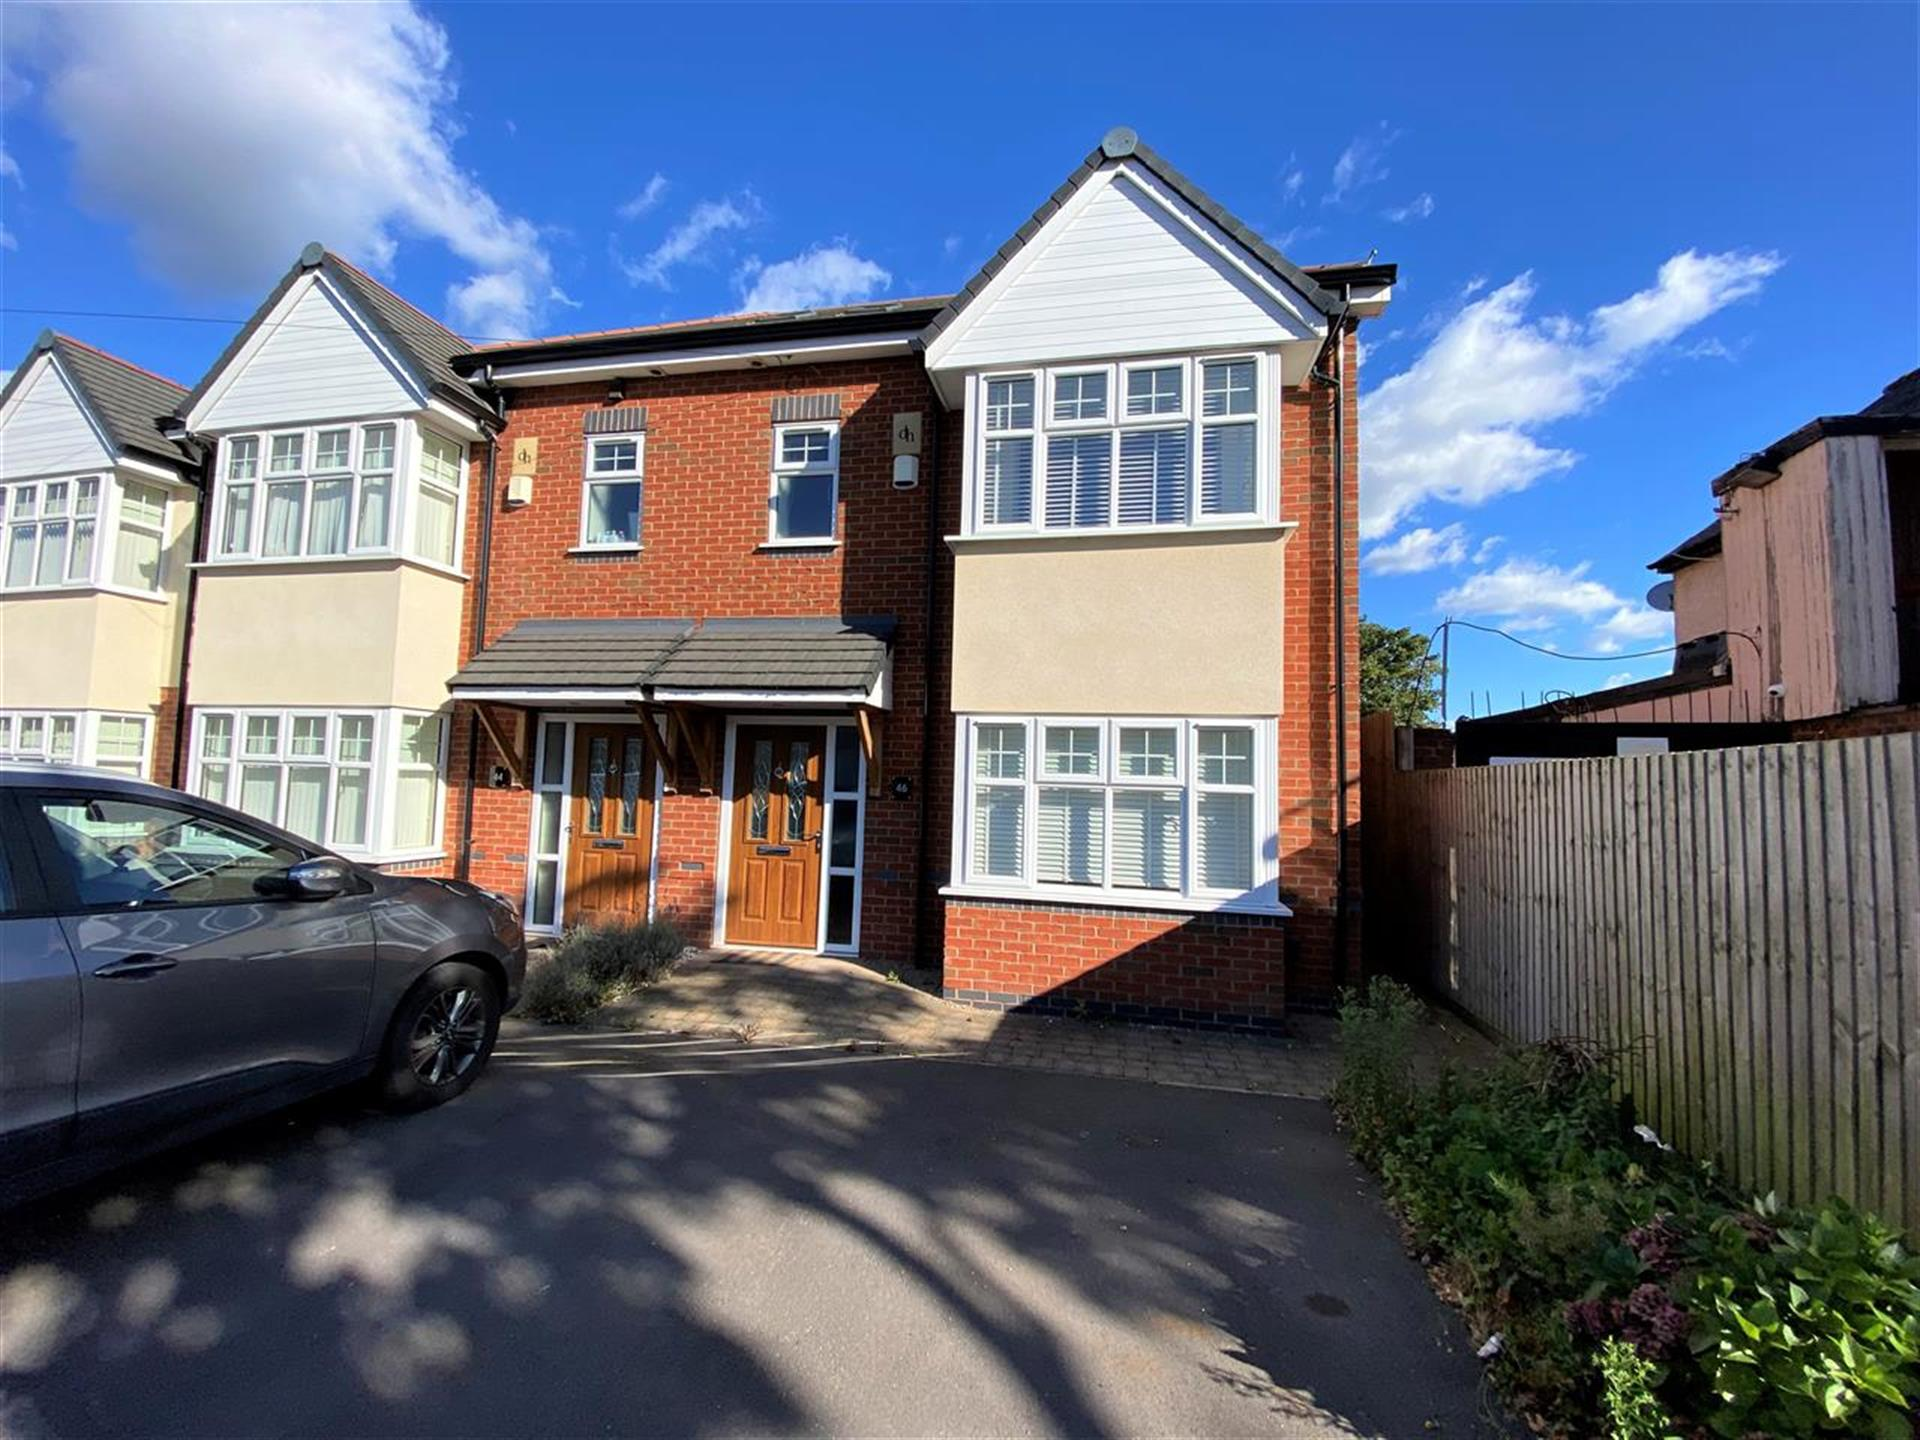 4 Bedroom Semi-detached House For Sale - Main Picture